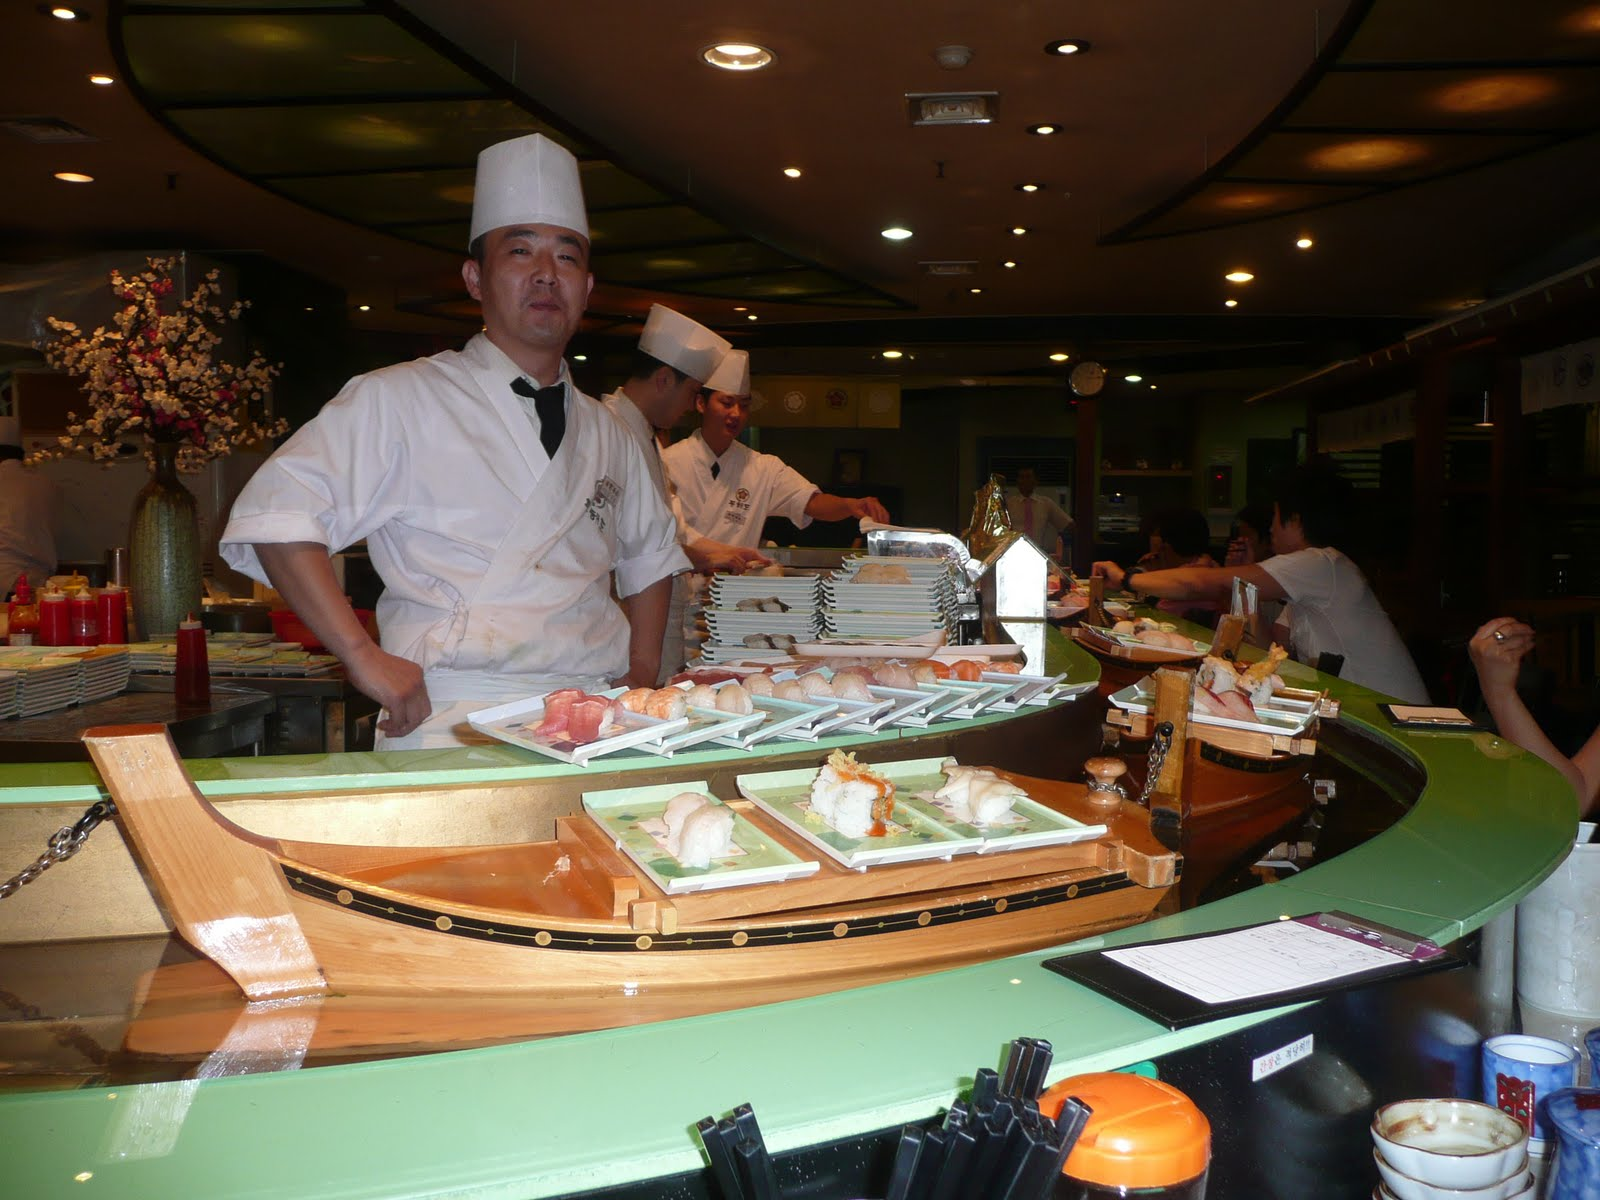 Seoul Restaurant Reviews All You Can Eat Sushi In 40 Minutes Gangnam Station A free inside look at company reviews and salaries posted anonymously by employees. seoul restaurant reviews blogger